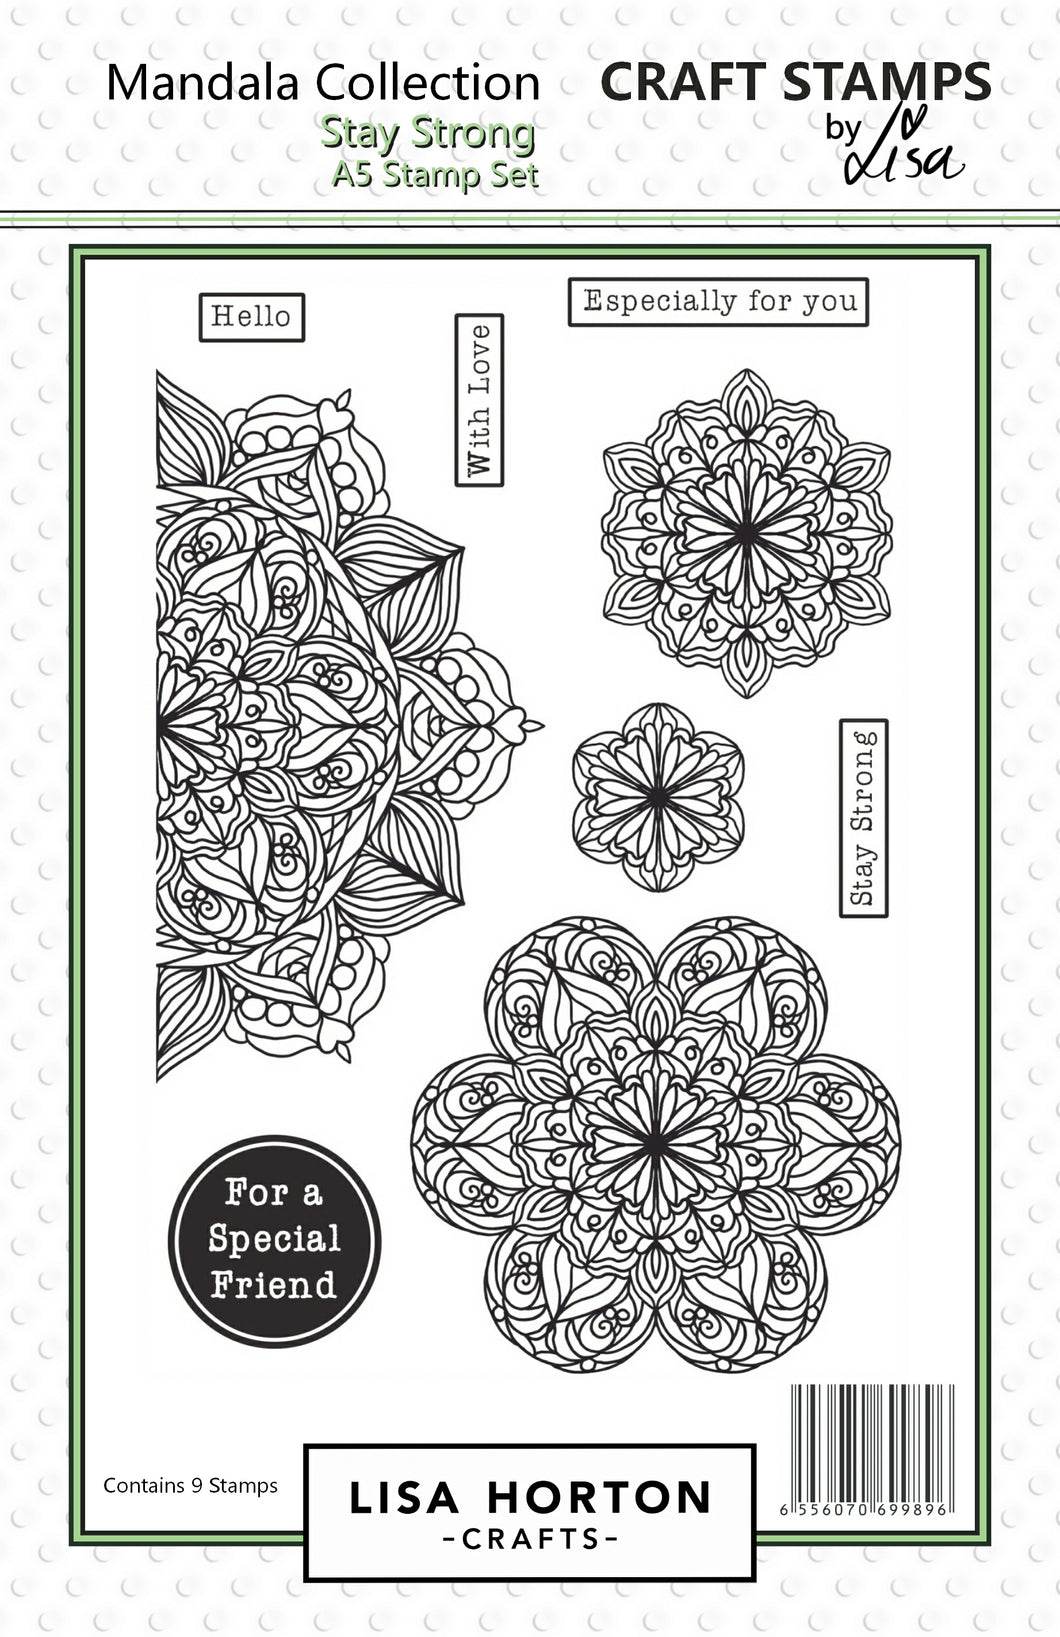 Stay Strong Mandala Stamp Set